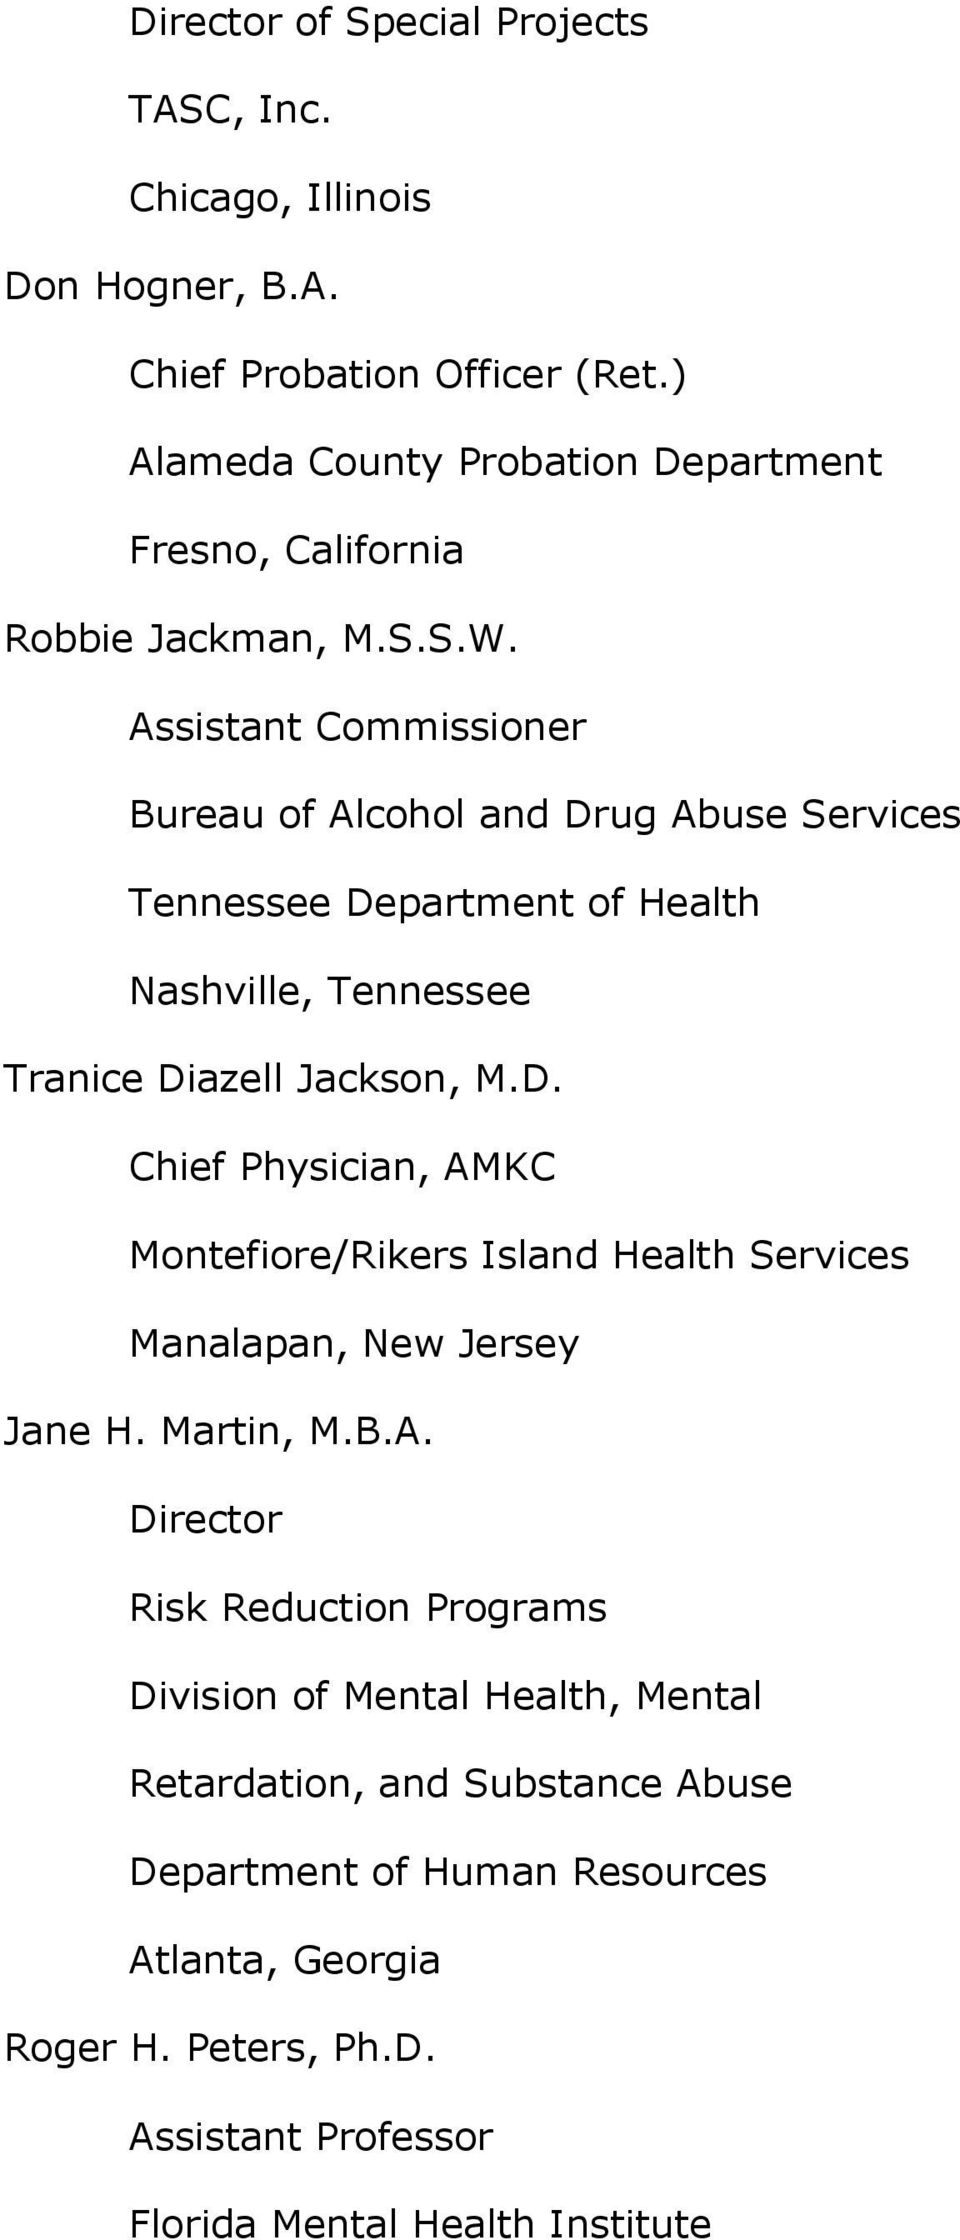 Assistant Commissioner Bureau of Alcohol and Drug Abuse Services Tennessee Department of Health Nashville, Tennessee Tranice Diazell Jackson, M.D. Chief Physician, AMKC Montefiore/Rikers Island Health Services Manalapan, New Jersey Jane H.